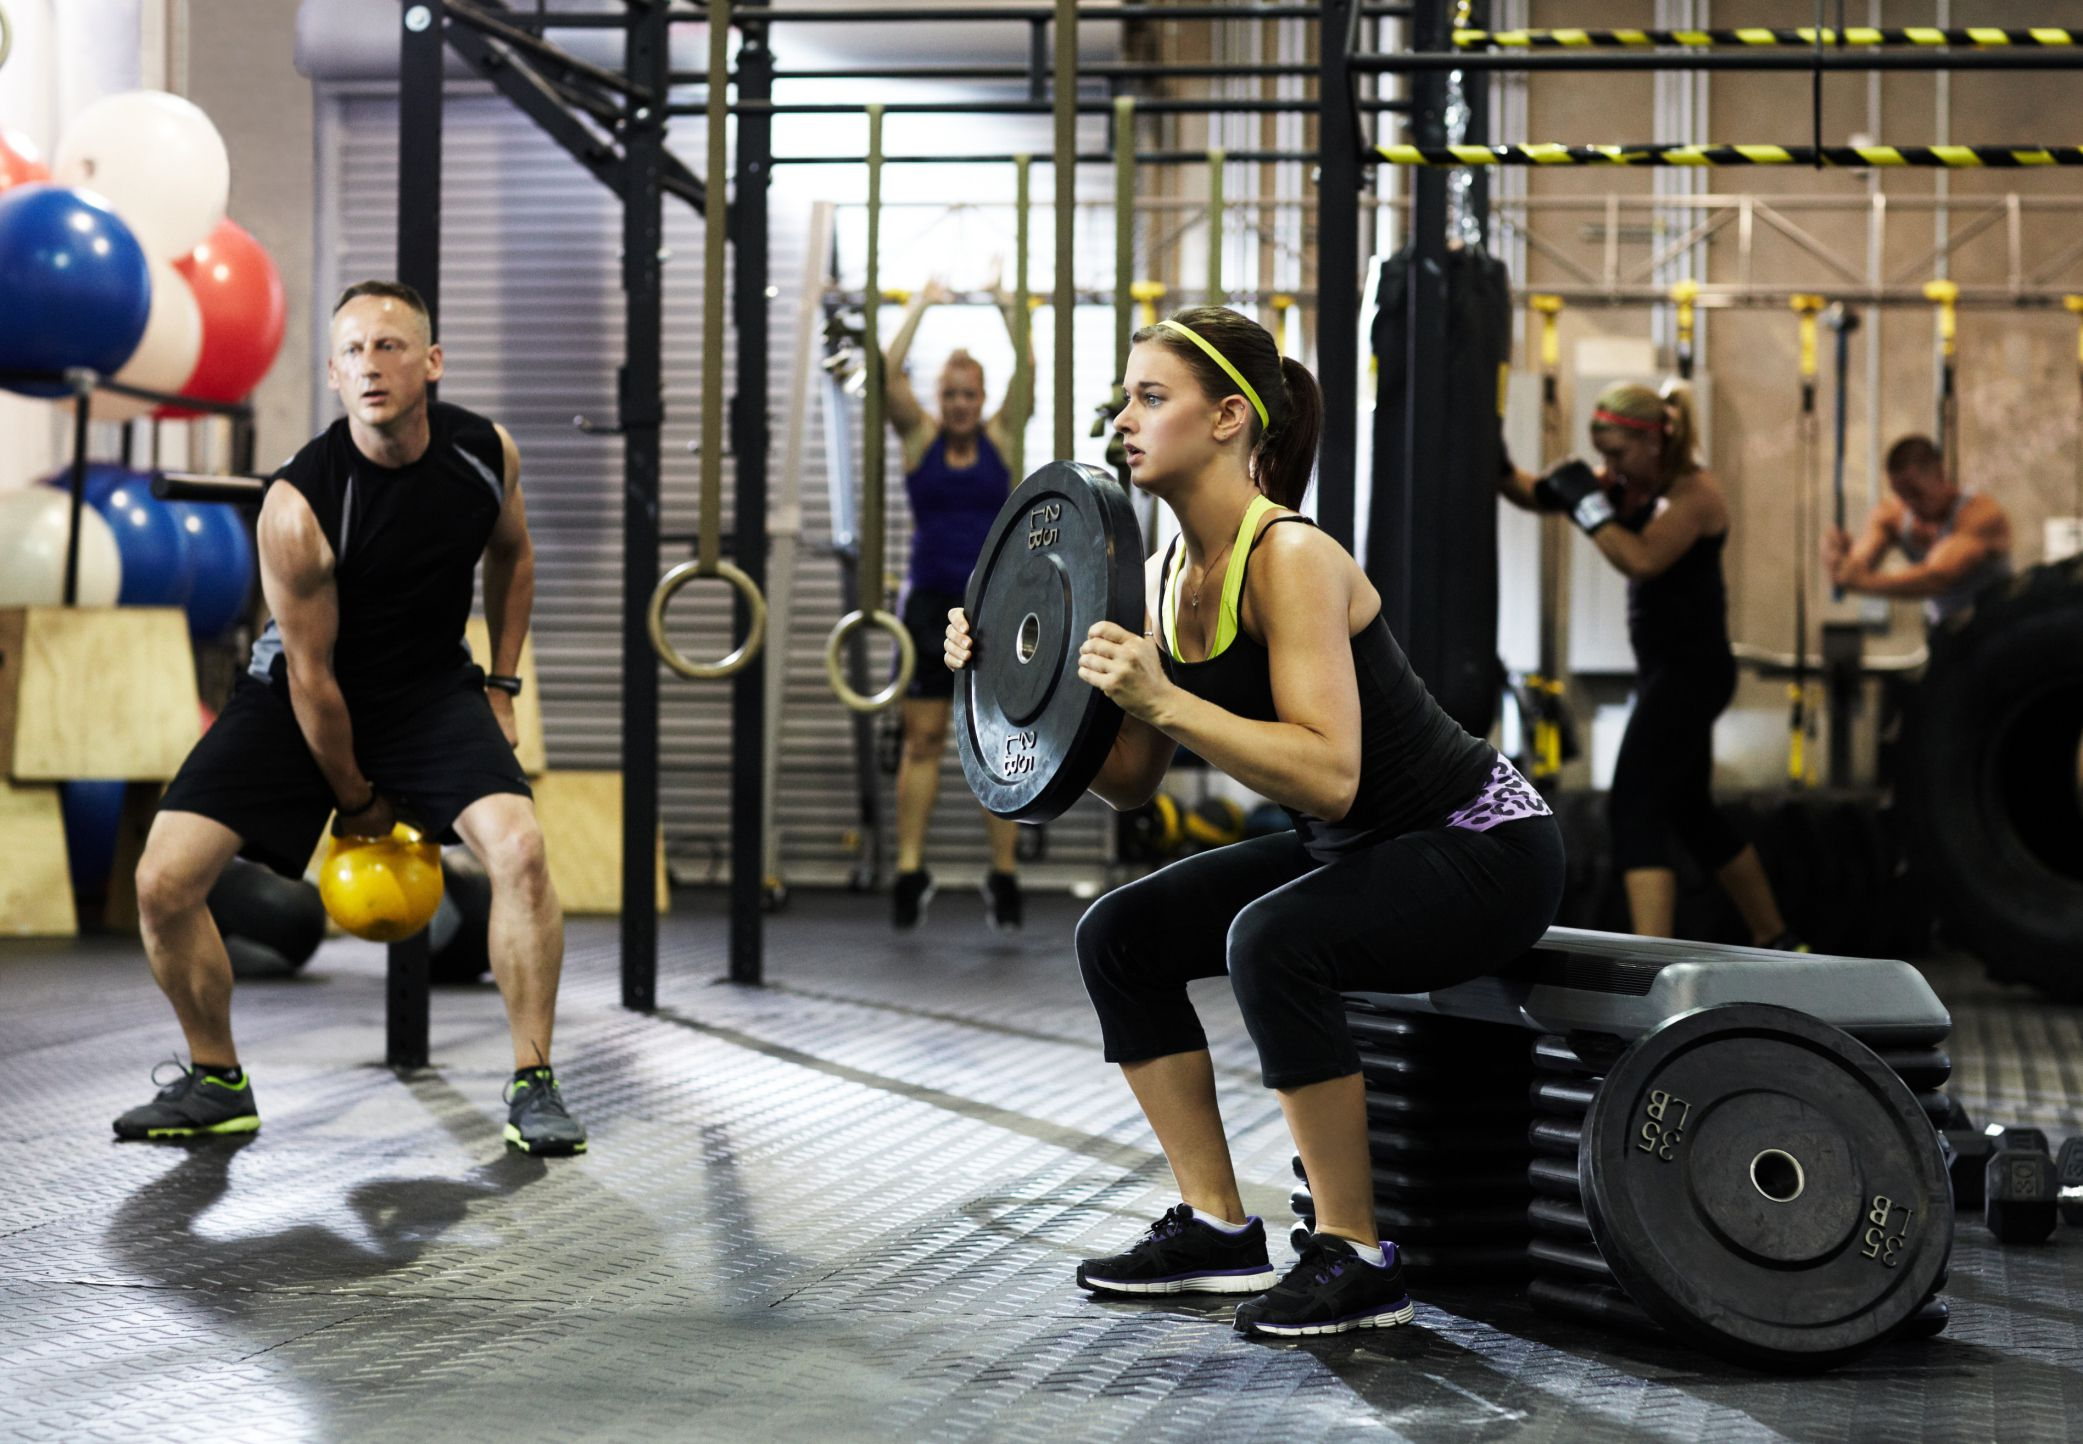 Pairing Cardio & Weight Training for Maximum Fat Loss